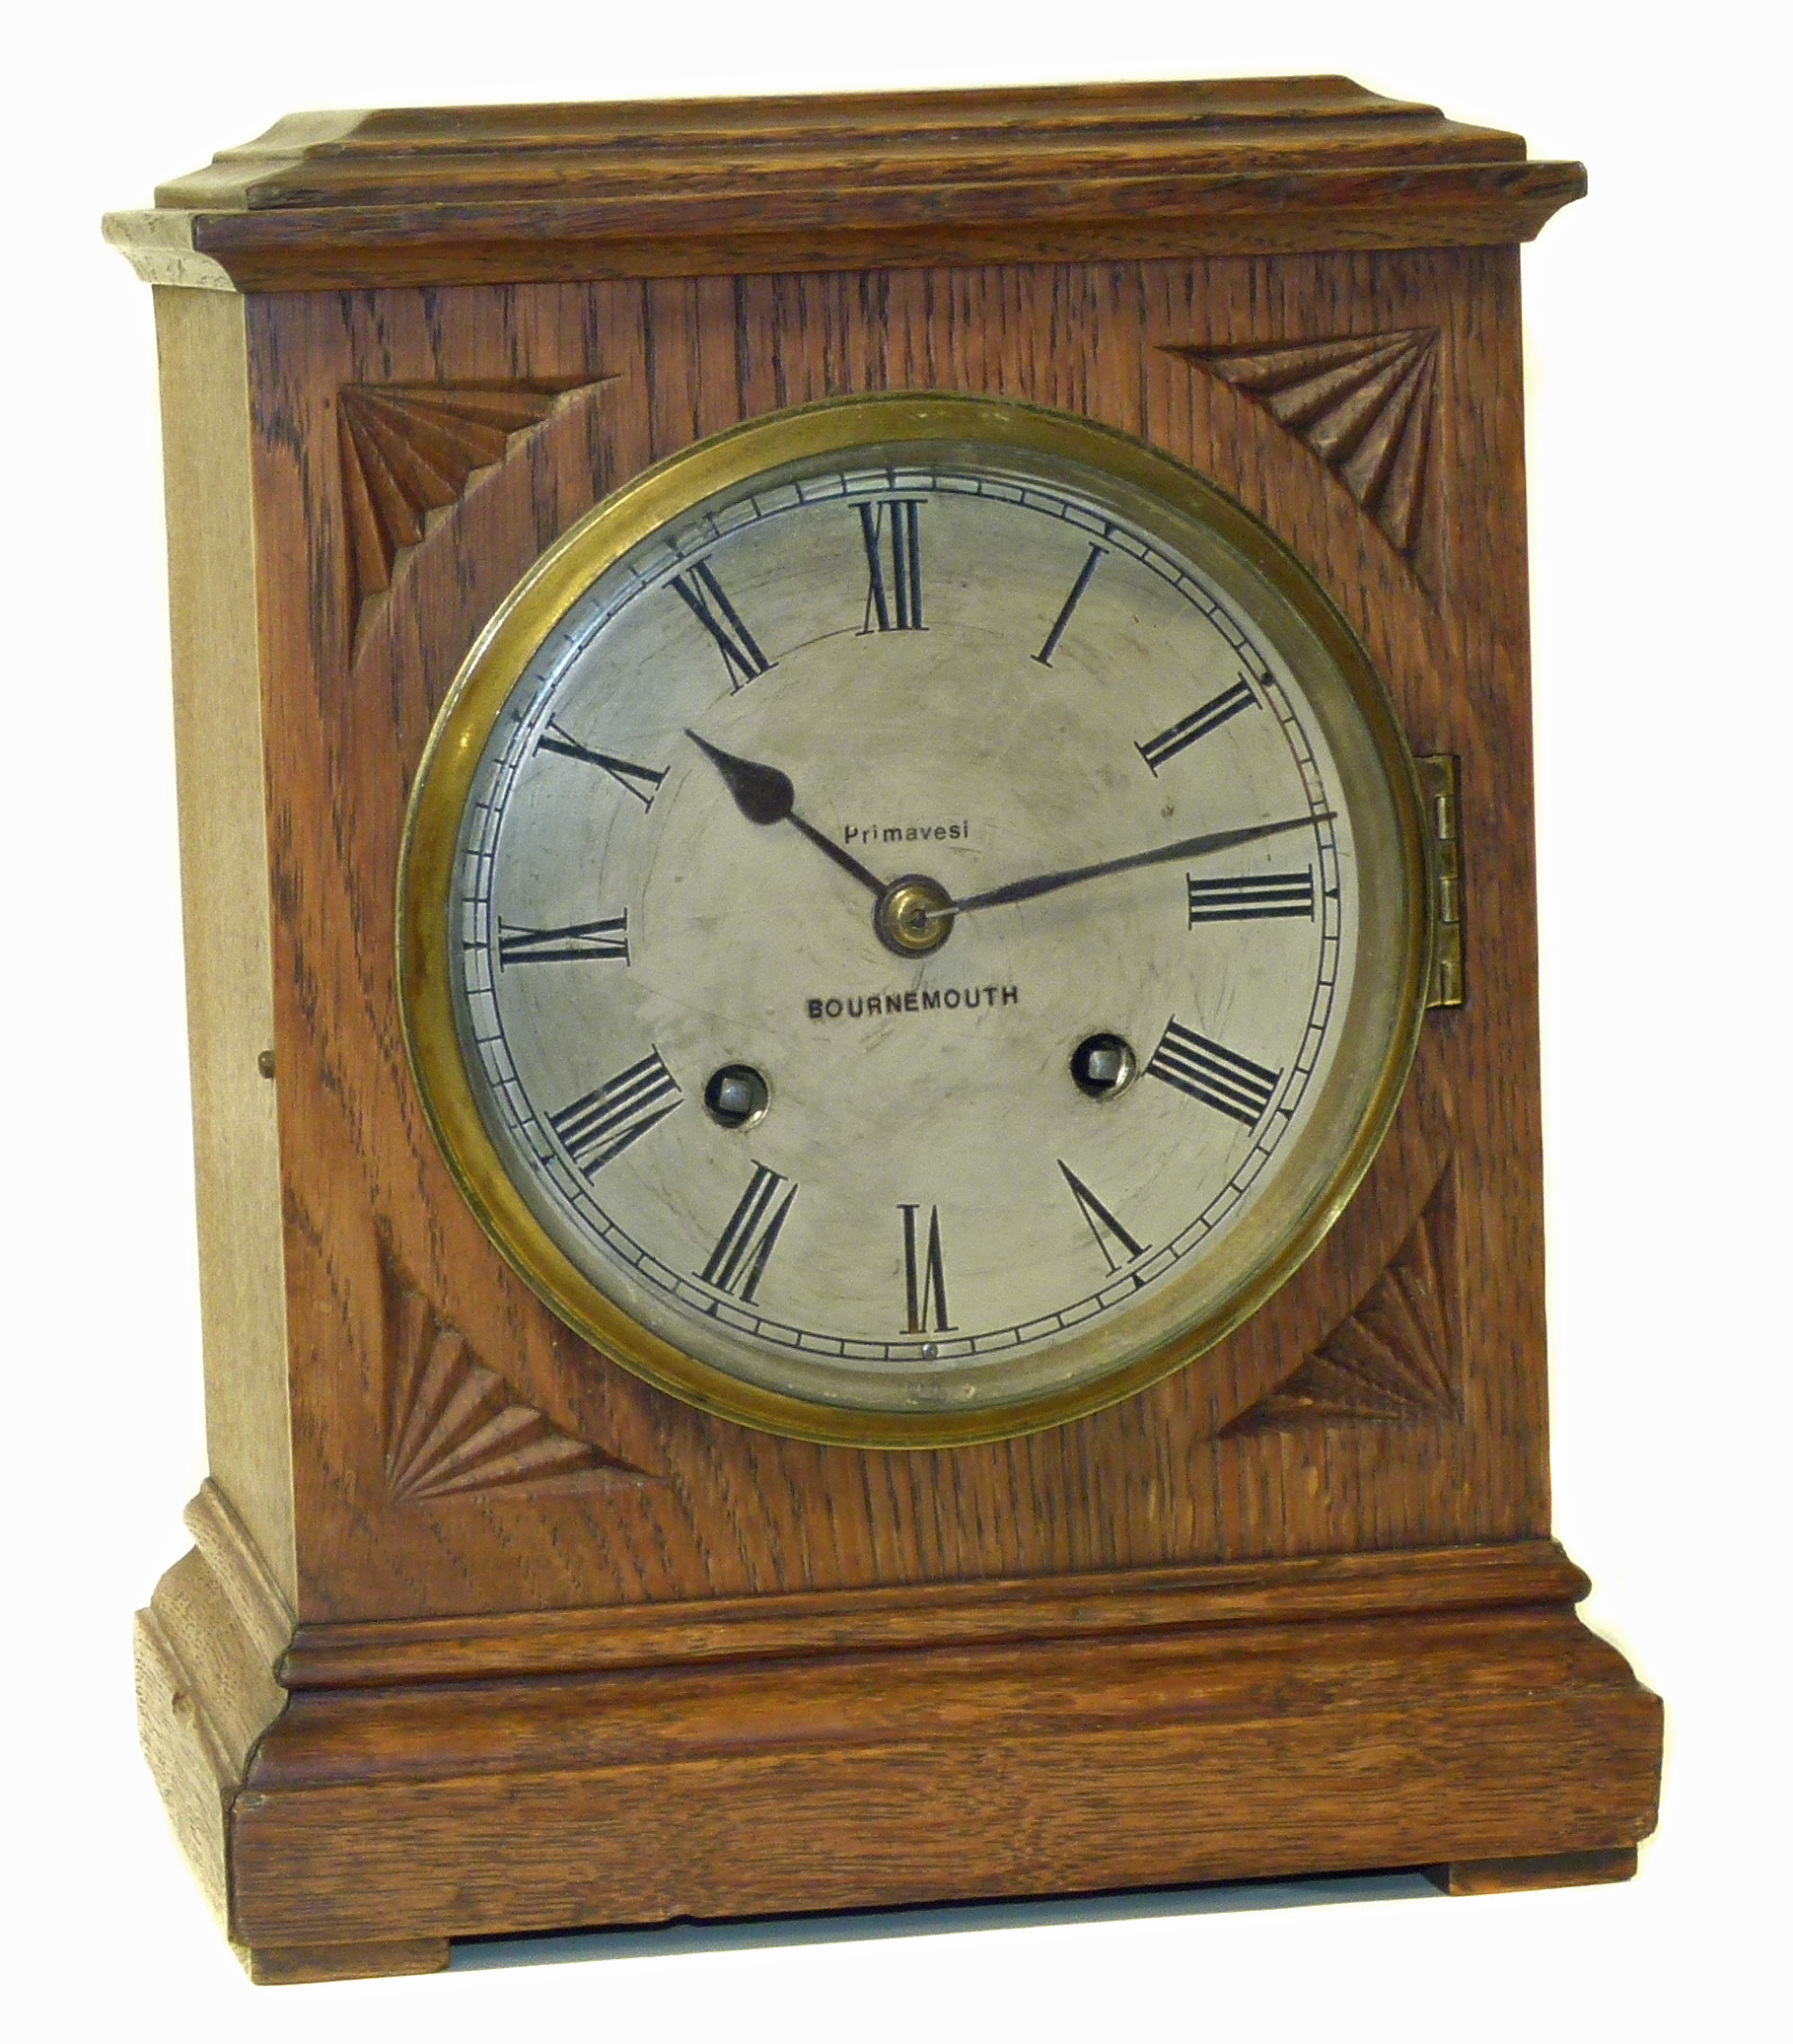 Lot 76 - Edwardian mantle clock with oak case and two train movement We are unable to do condition reports on